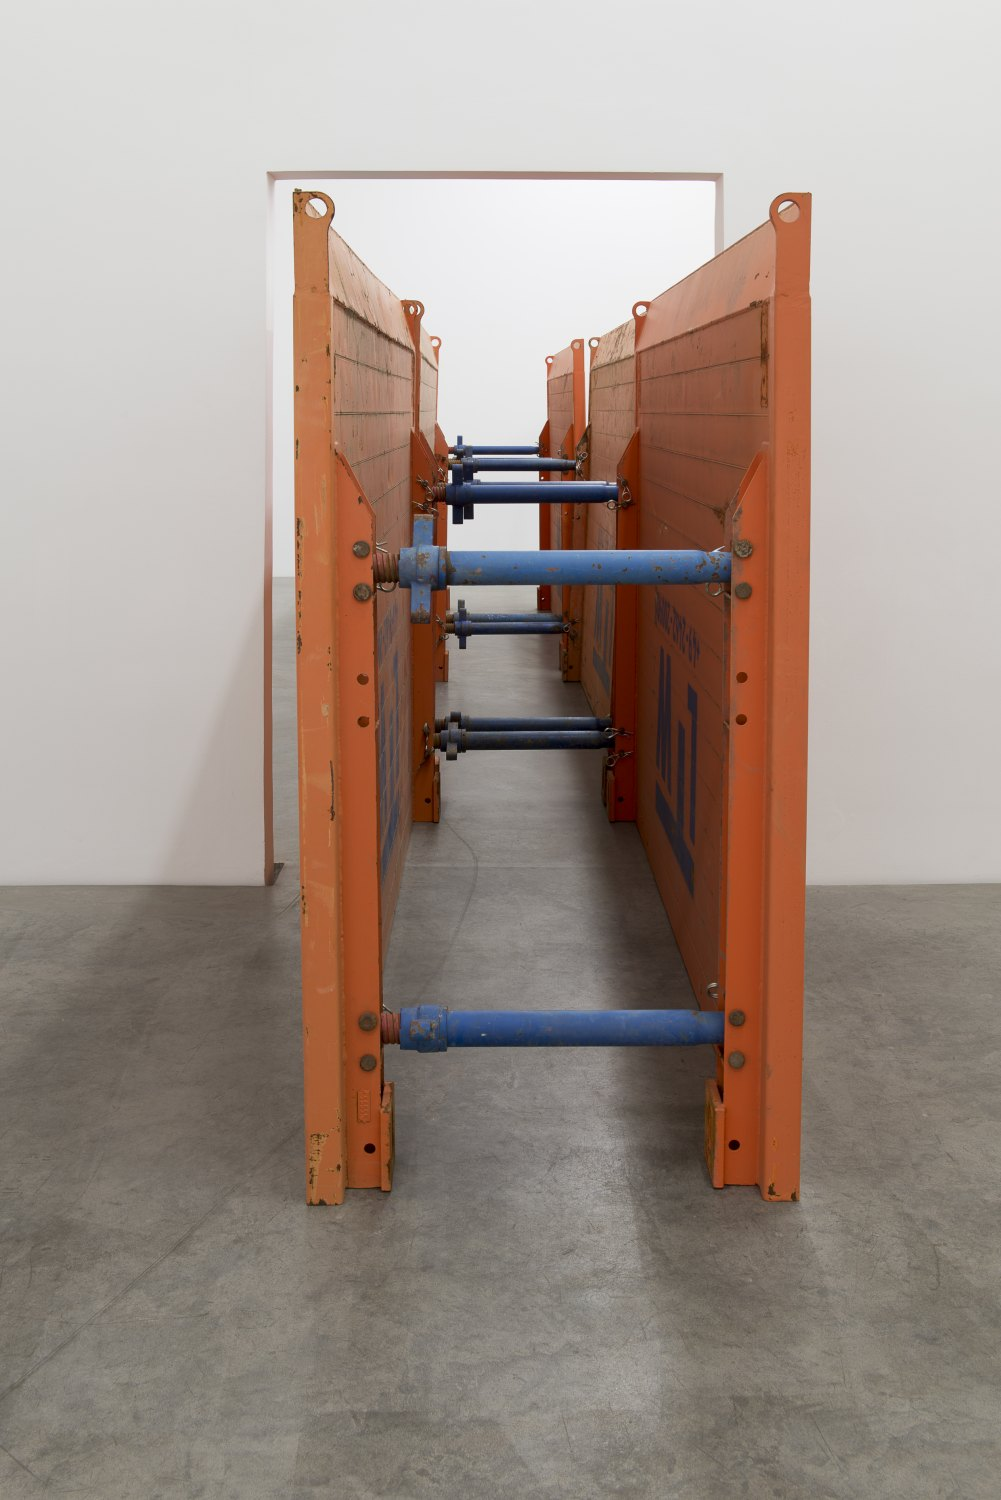 Matias Faldbakken & Leander   Djønne, Void to Void, 2017    Trench boxes, dimensions variable